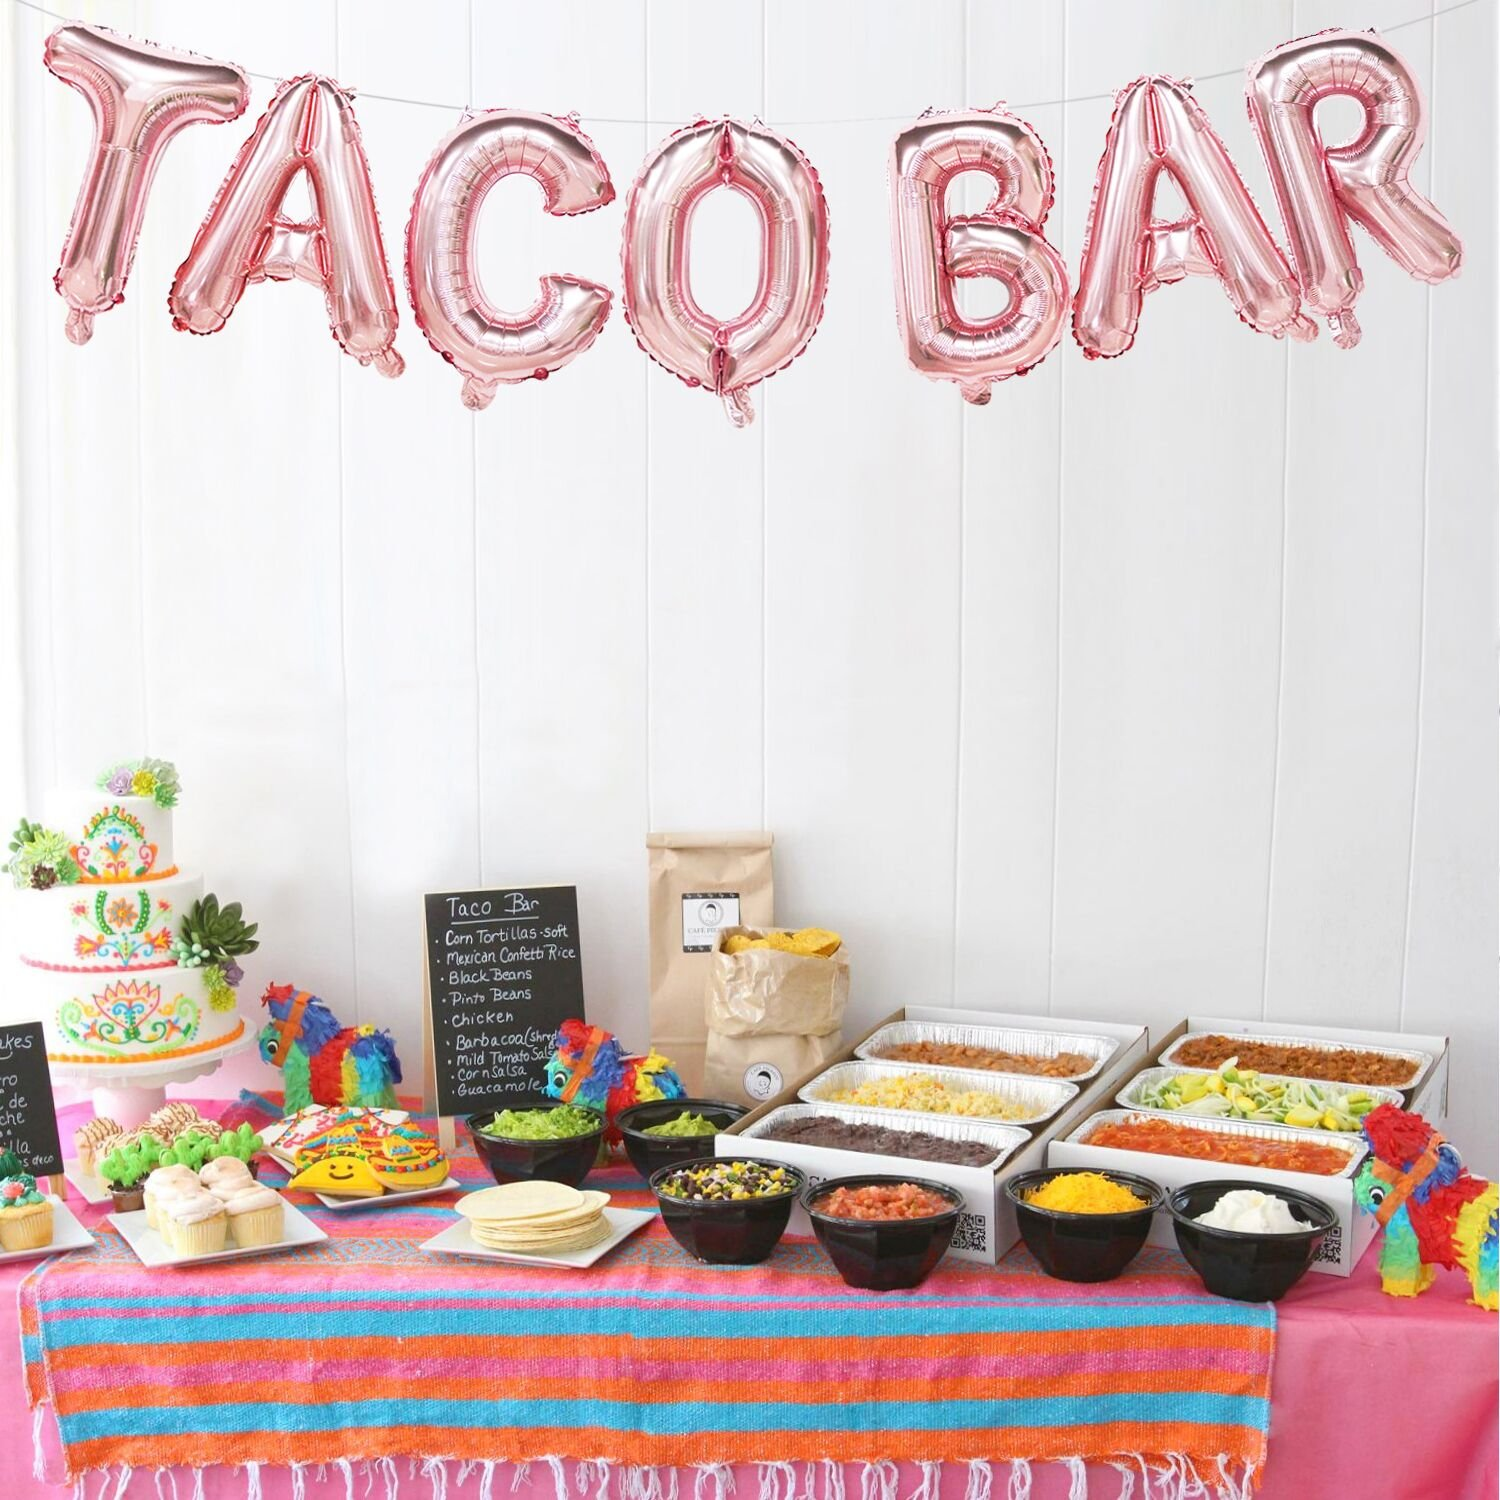 Amazon.com: Taco Bar Balloons Rose Gold | Taco Bar Banner Sign | Taco Bar Decorations for Wedding, Baby Shower, Bridal Shower, Engagement, Fiesta Party, ...